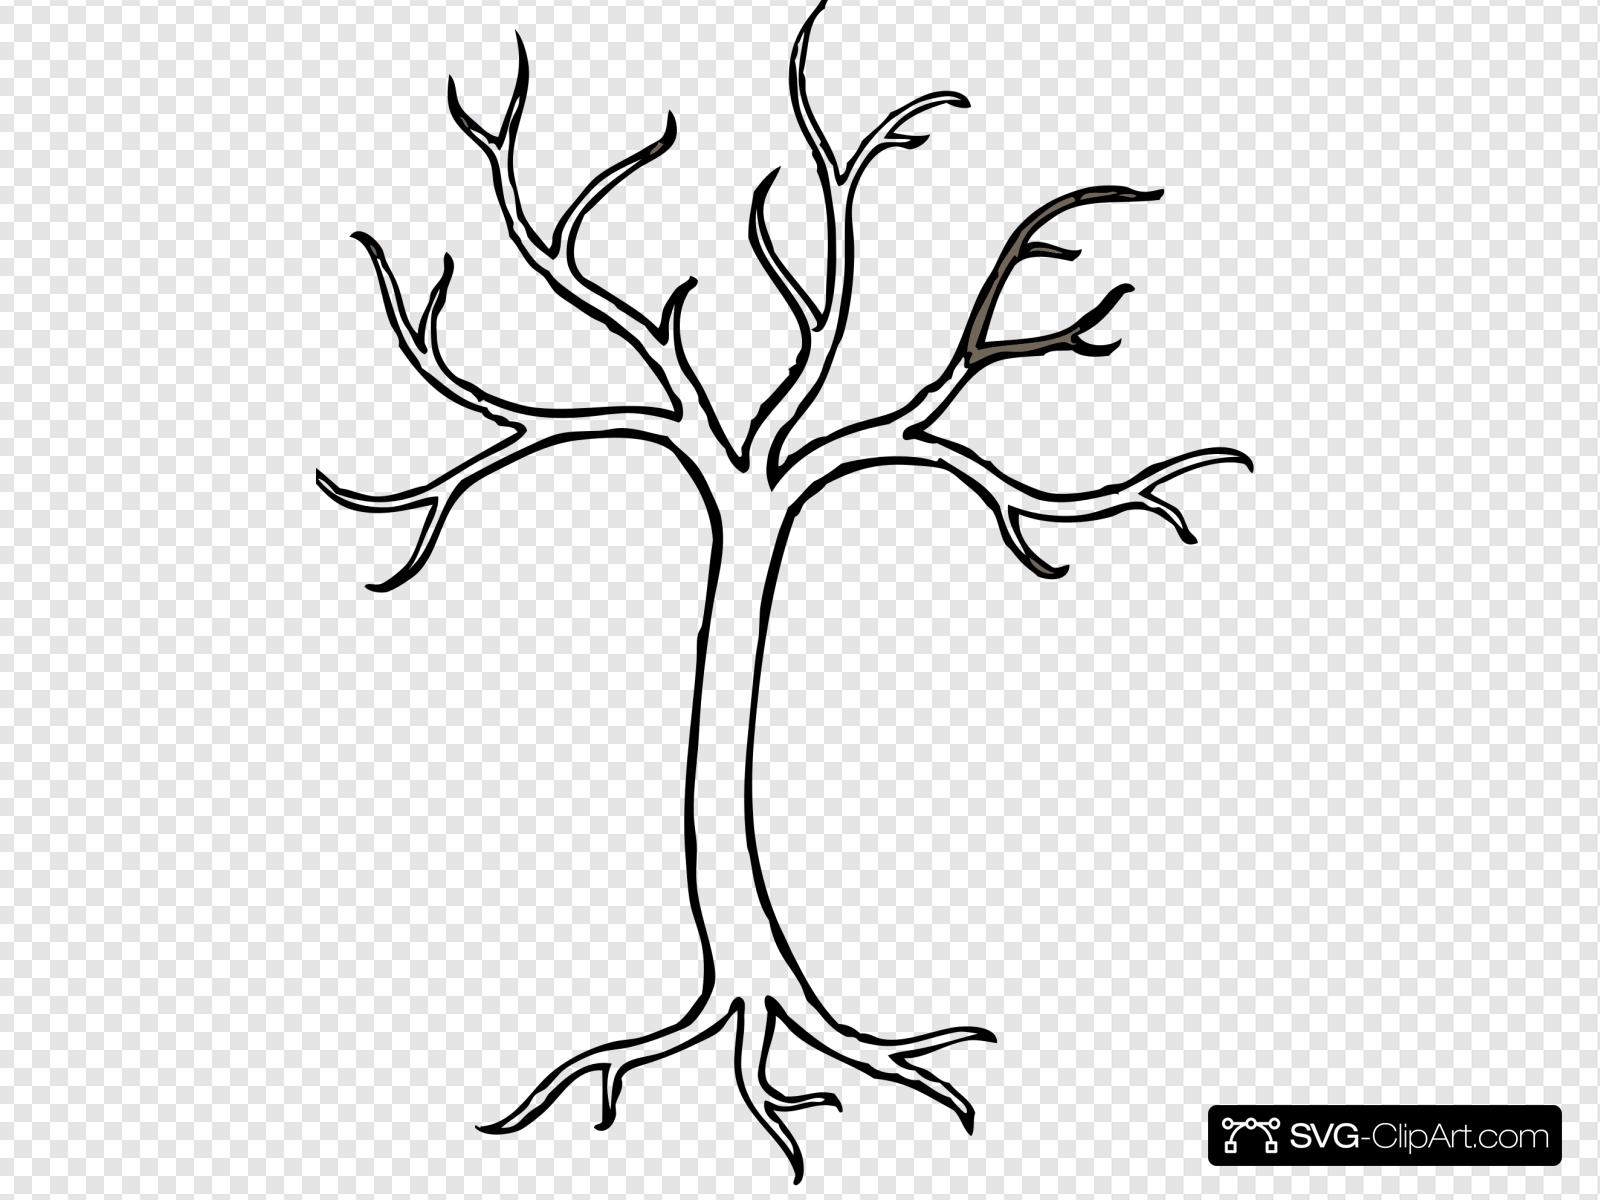 Hollow tree clipart picture black and white Hollow Tree Clip art, Icon and SVG - SVG Clipart picture black and white